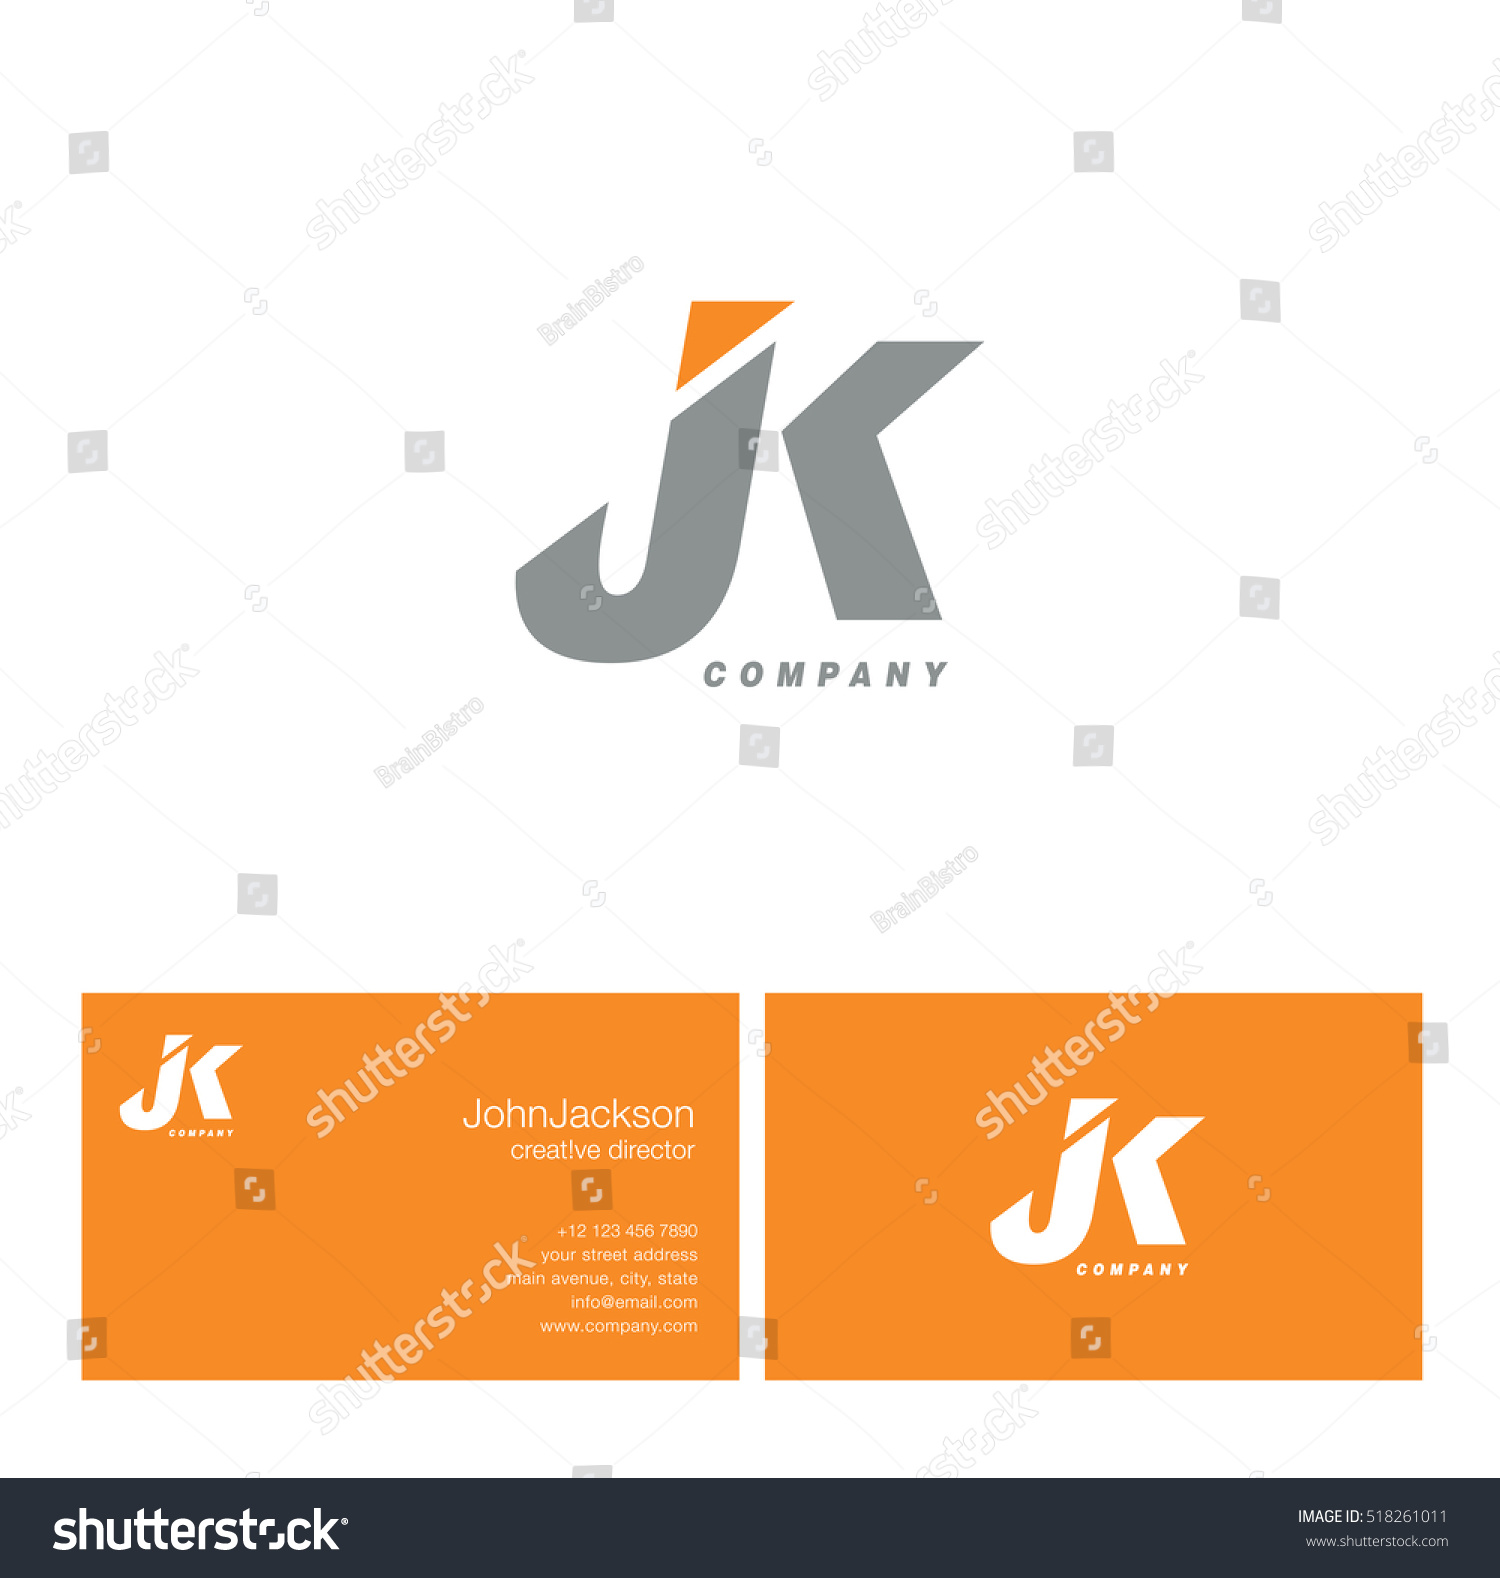 Great 1 Inch Button Template Tall 10 Envelope Template Illustrator Clean 10 Label Template 10 Tips For A Great Resume Old 10 Tips For Making A Resume Pink10 Tips For Writing A Resume J K Letters Logo Business Card Stock Vector 518261011   Shutterstock